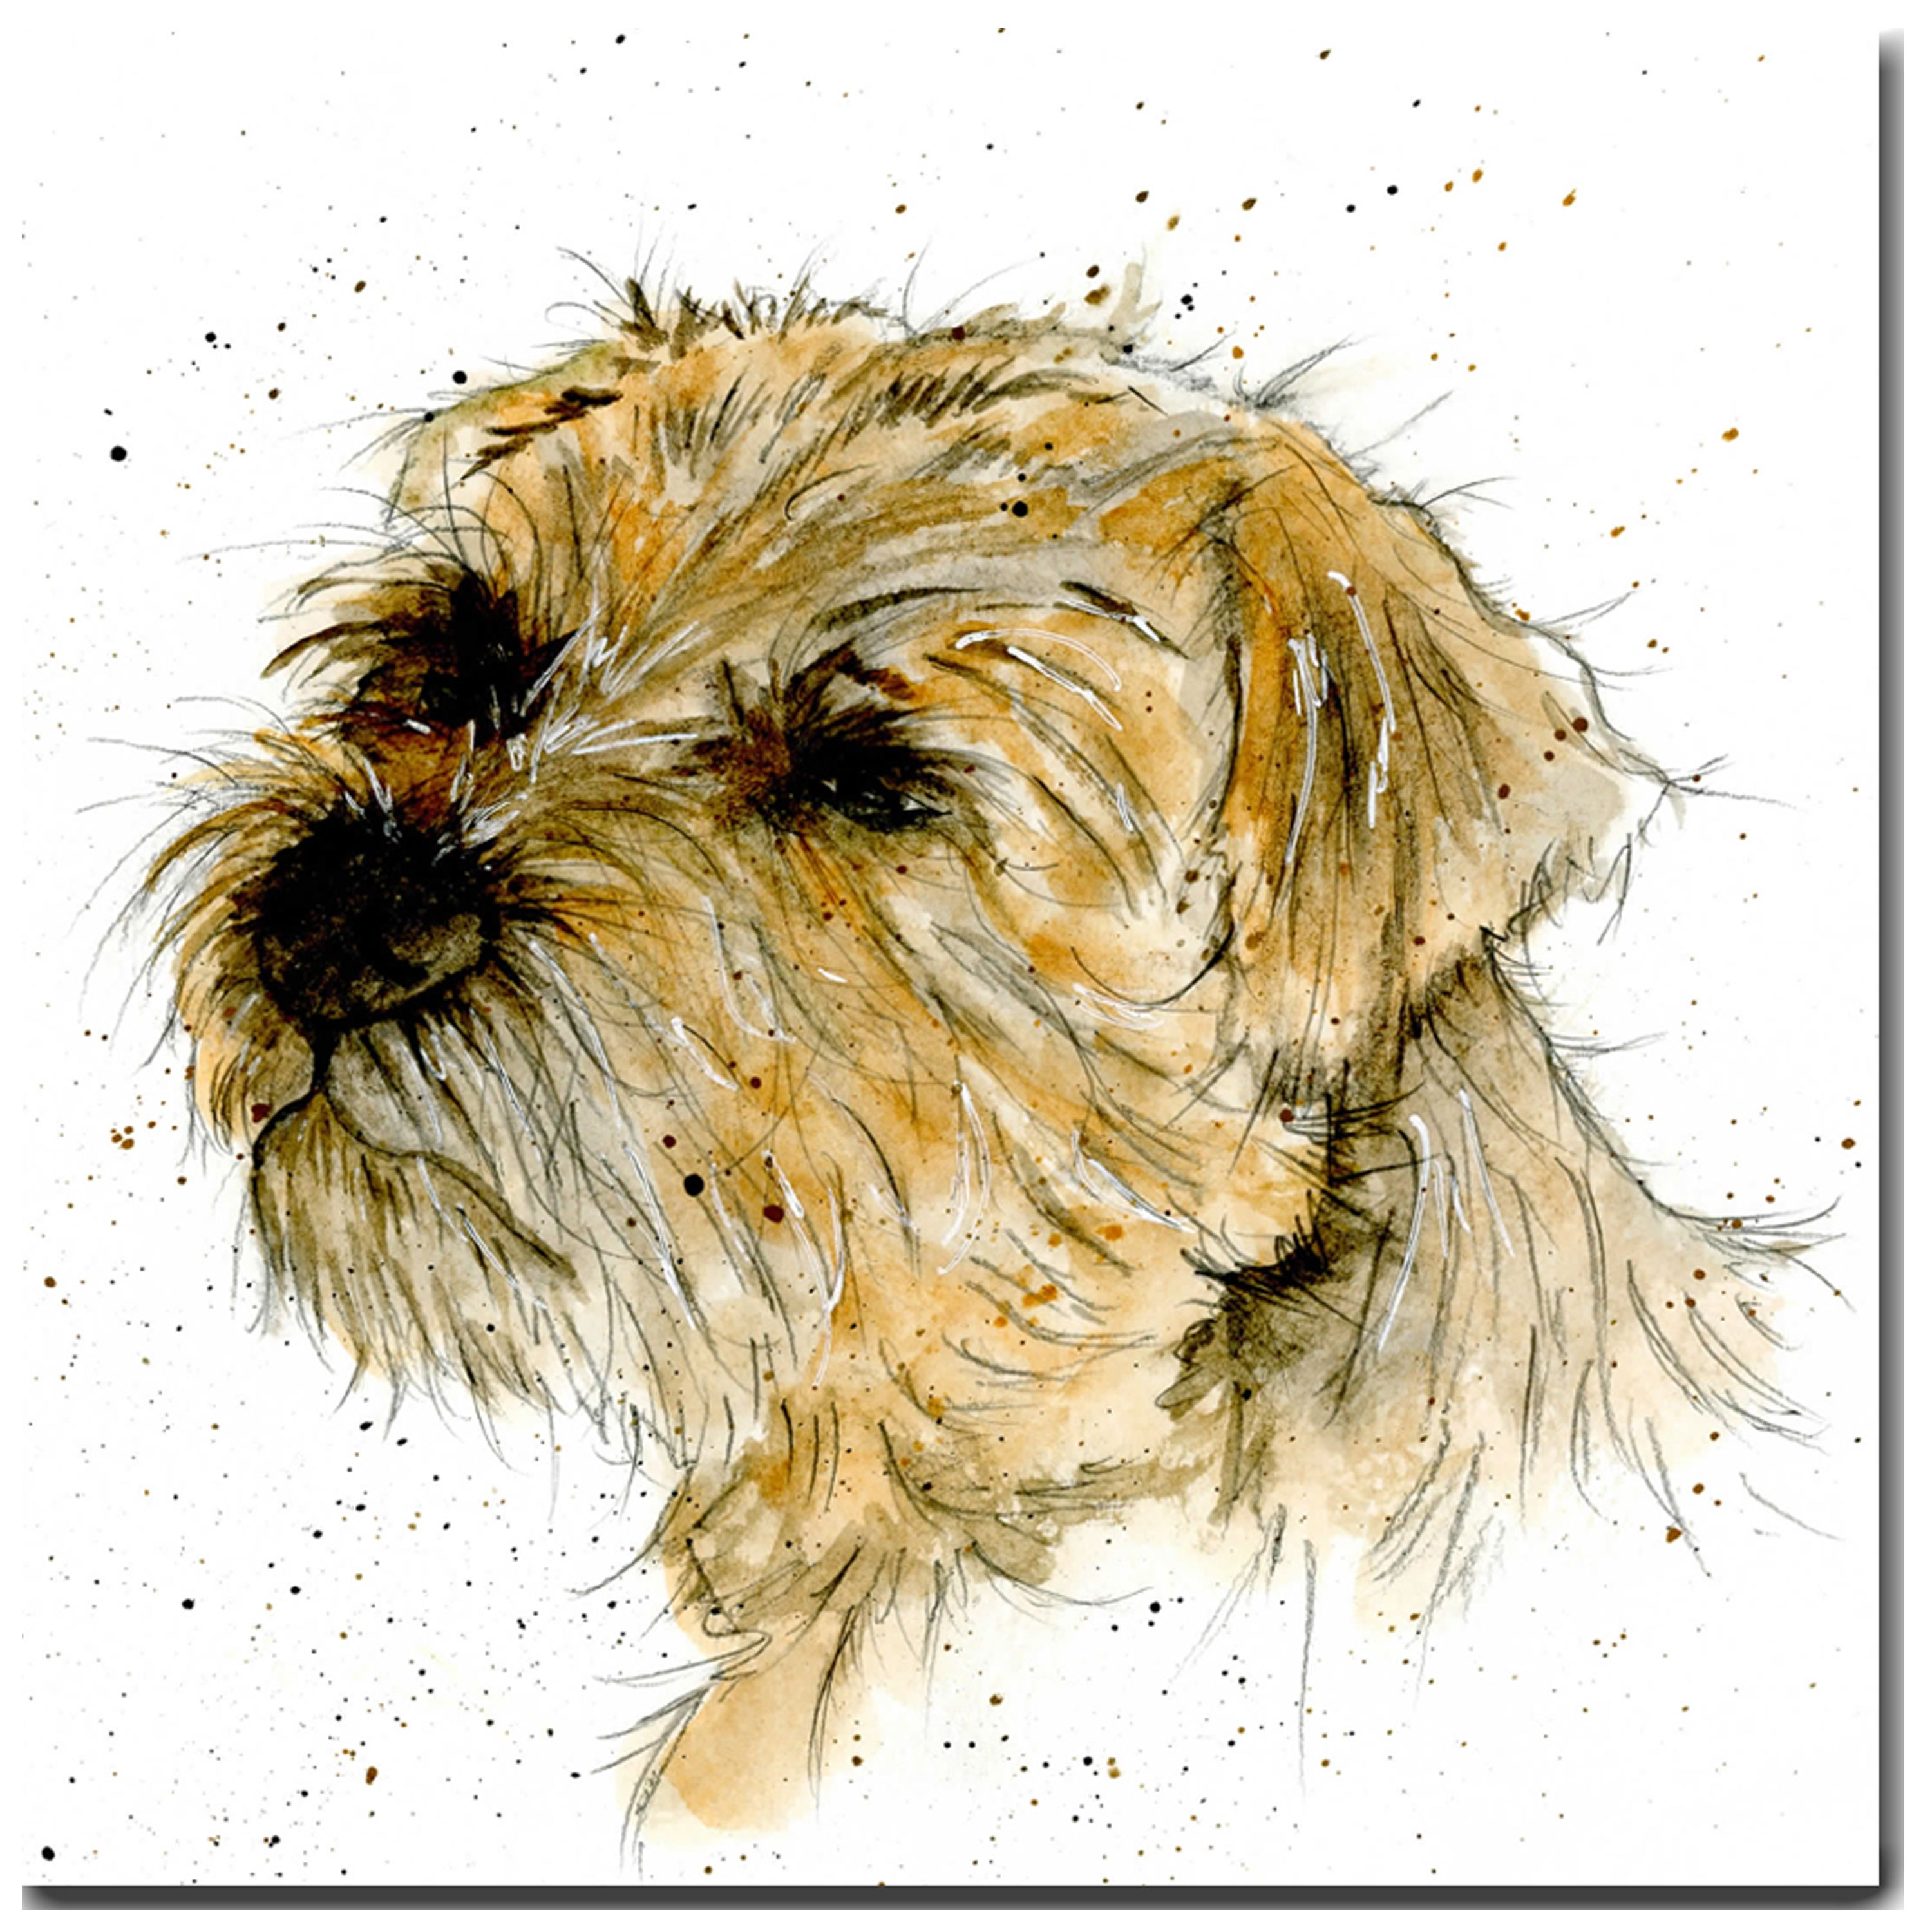 Monty the border terrier greeting card 225 the skinny card company monty the border terrier greeting card 225 the skinny card company m4hsunfo